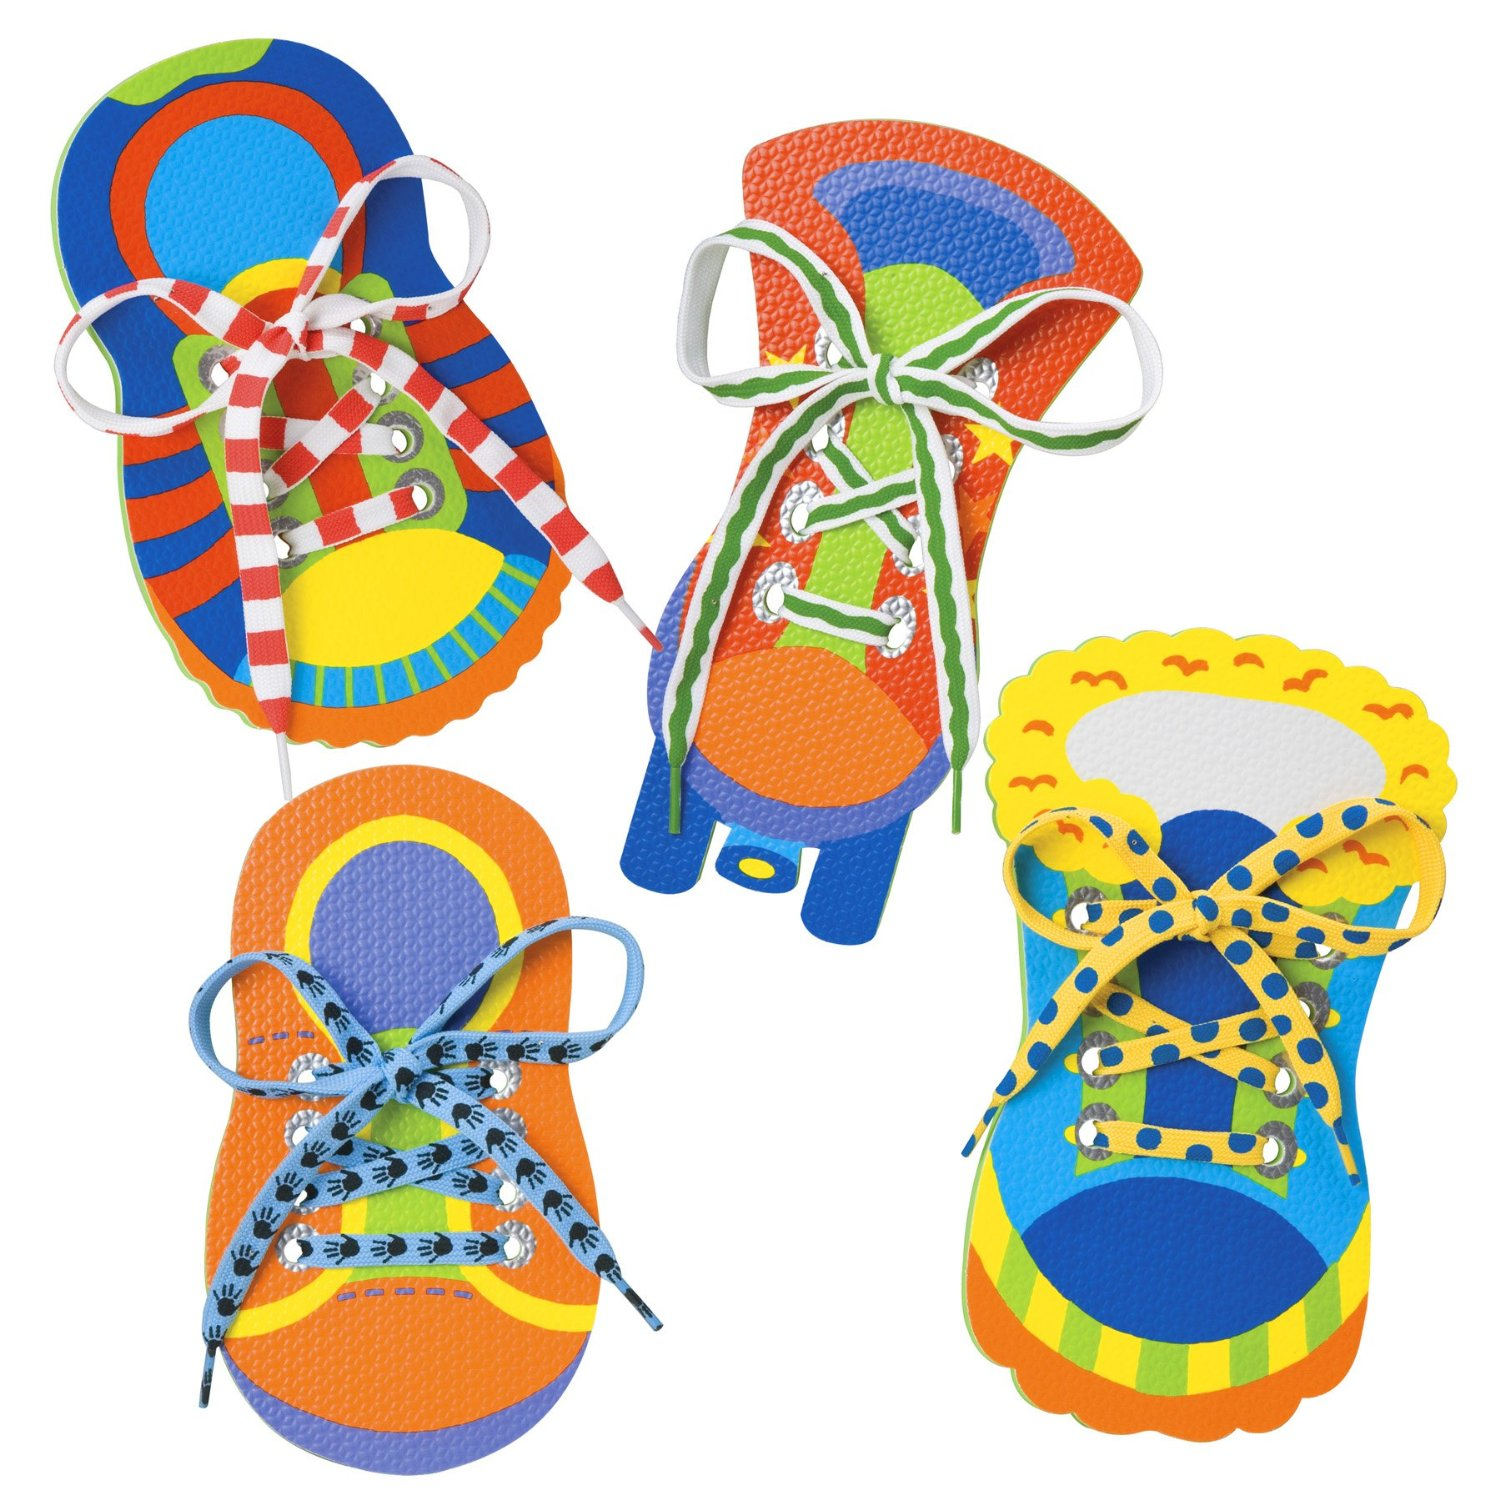 Other Educational Toys 1x shoe lace tying practice wooden shoe toy